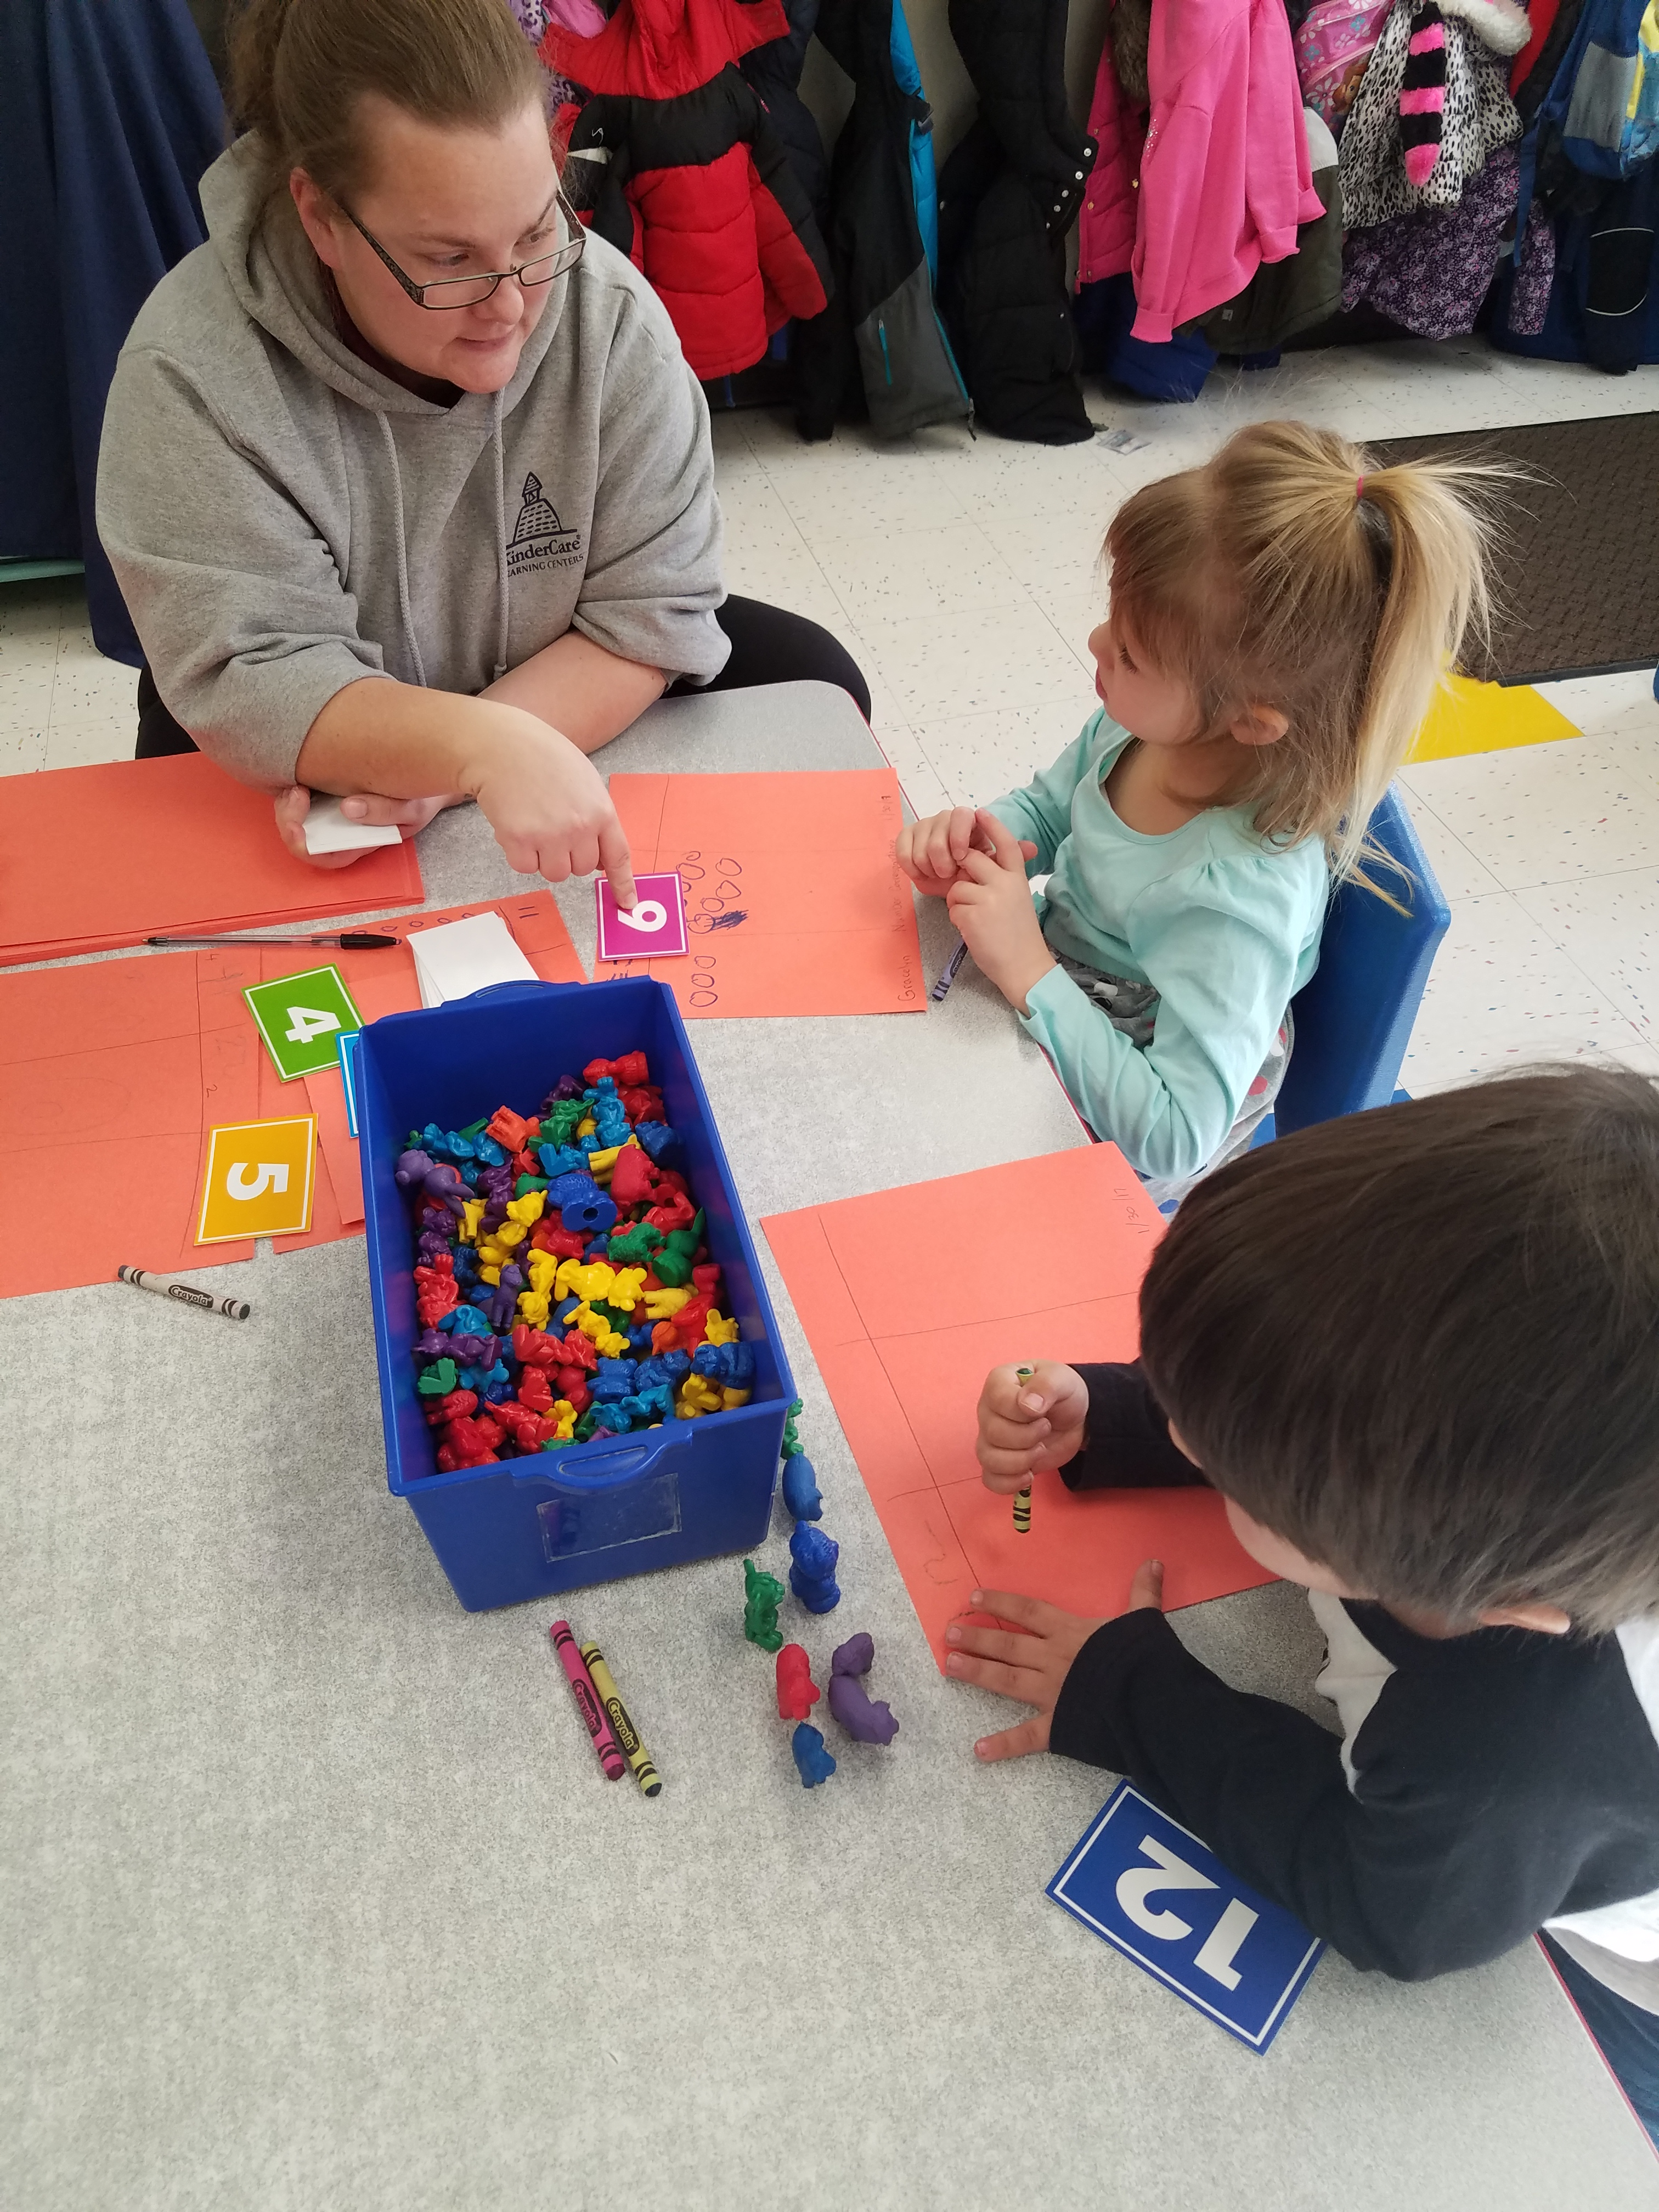 Fun with early math skills in our prekindergarten classroom !